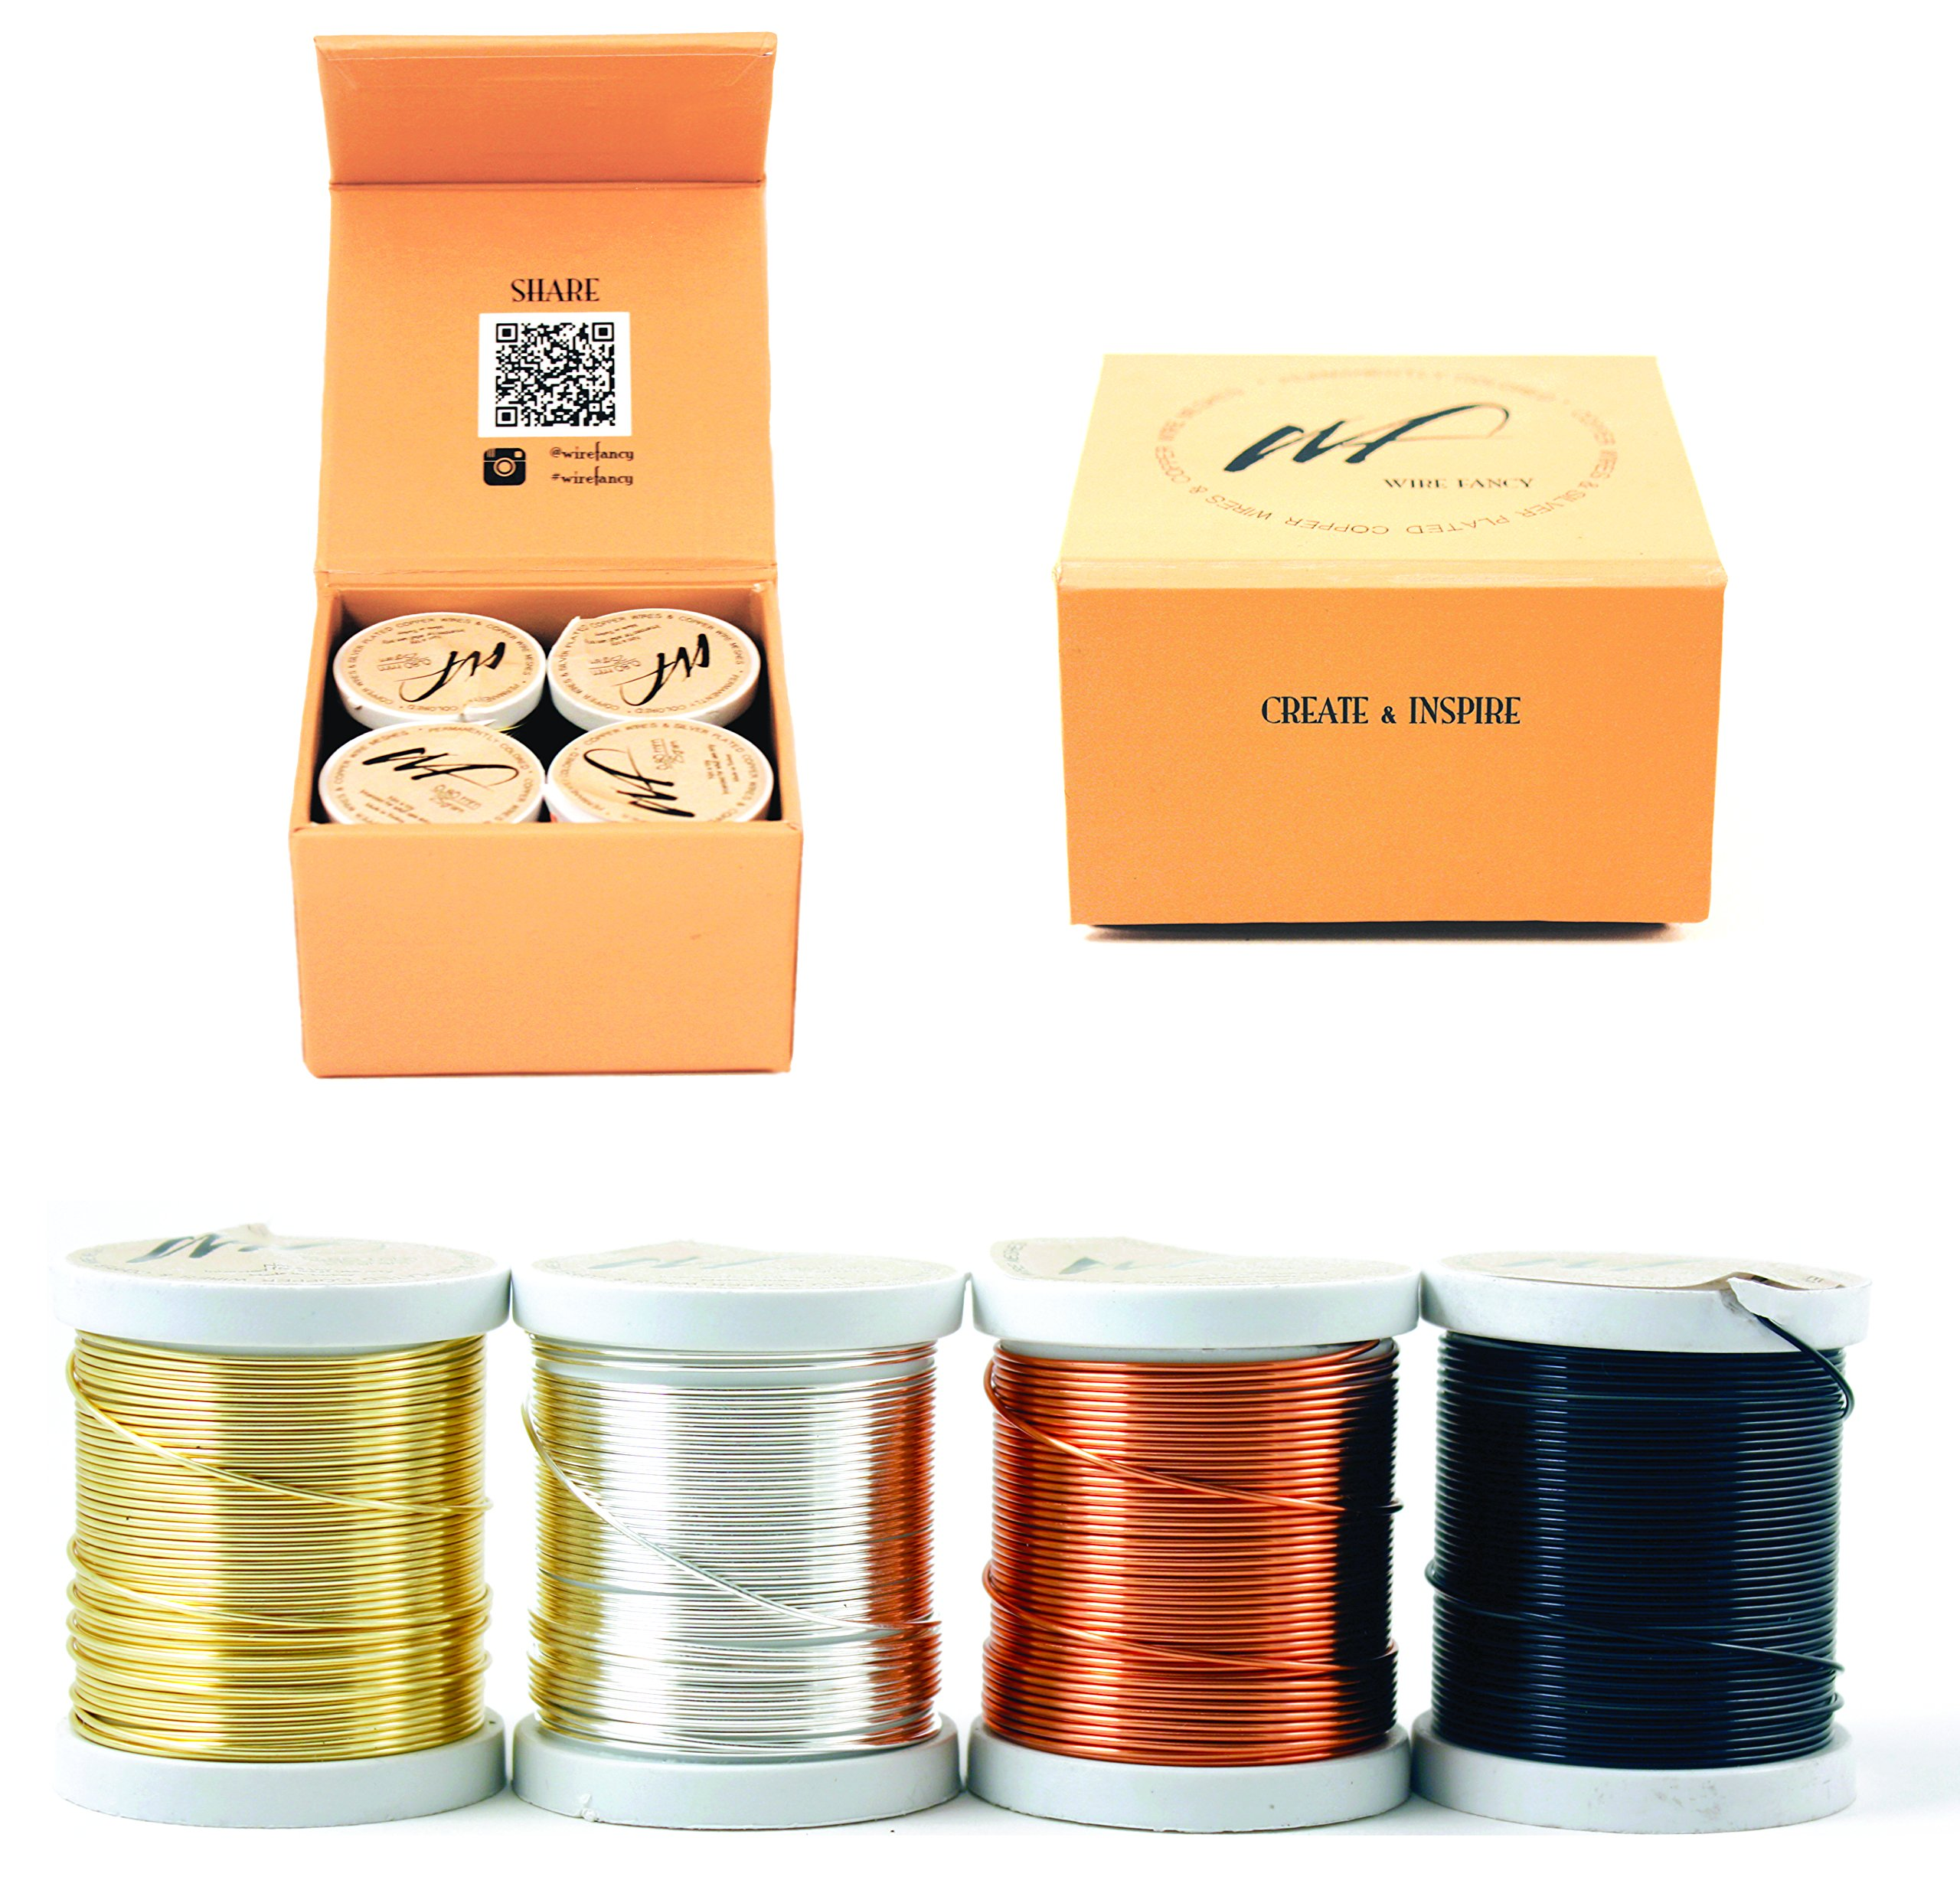 20 Gauge Tarnish Resistant Silver-Plated Copper and Copper Wire Set of 4 spools for Wrapping Jewelry Making Beading Floral Colored DIY Artistic Craft Coil Wire kit (WF Color Set 1, 0.80 mm) by Wire Fancy